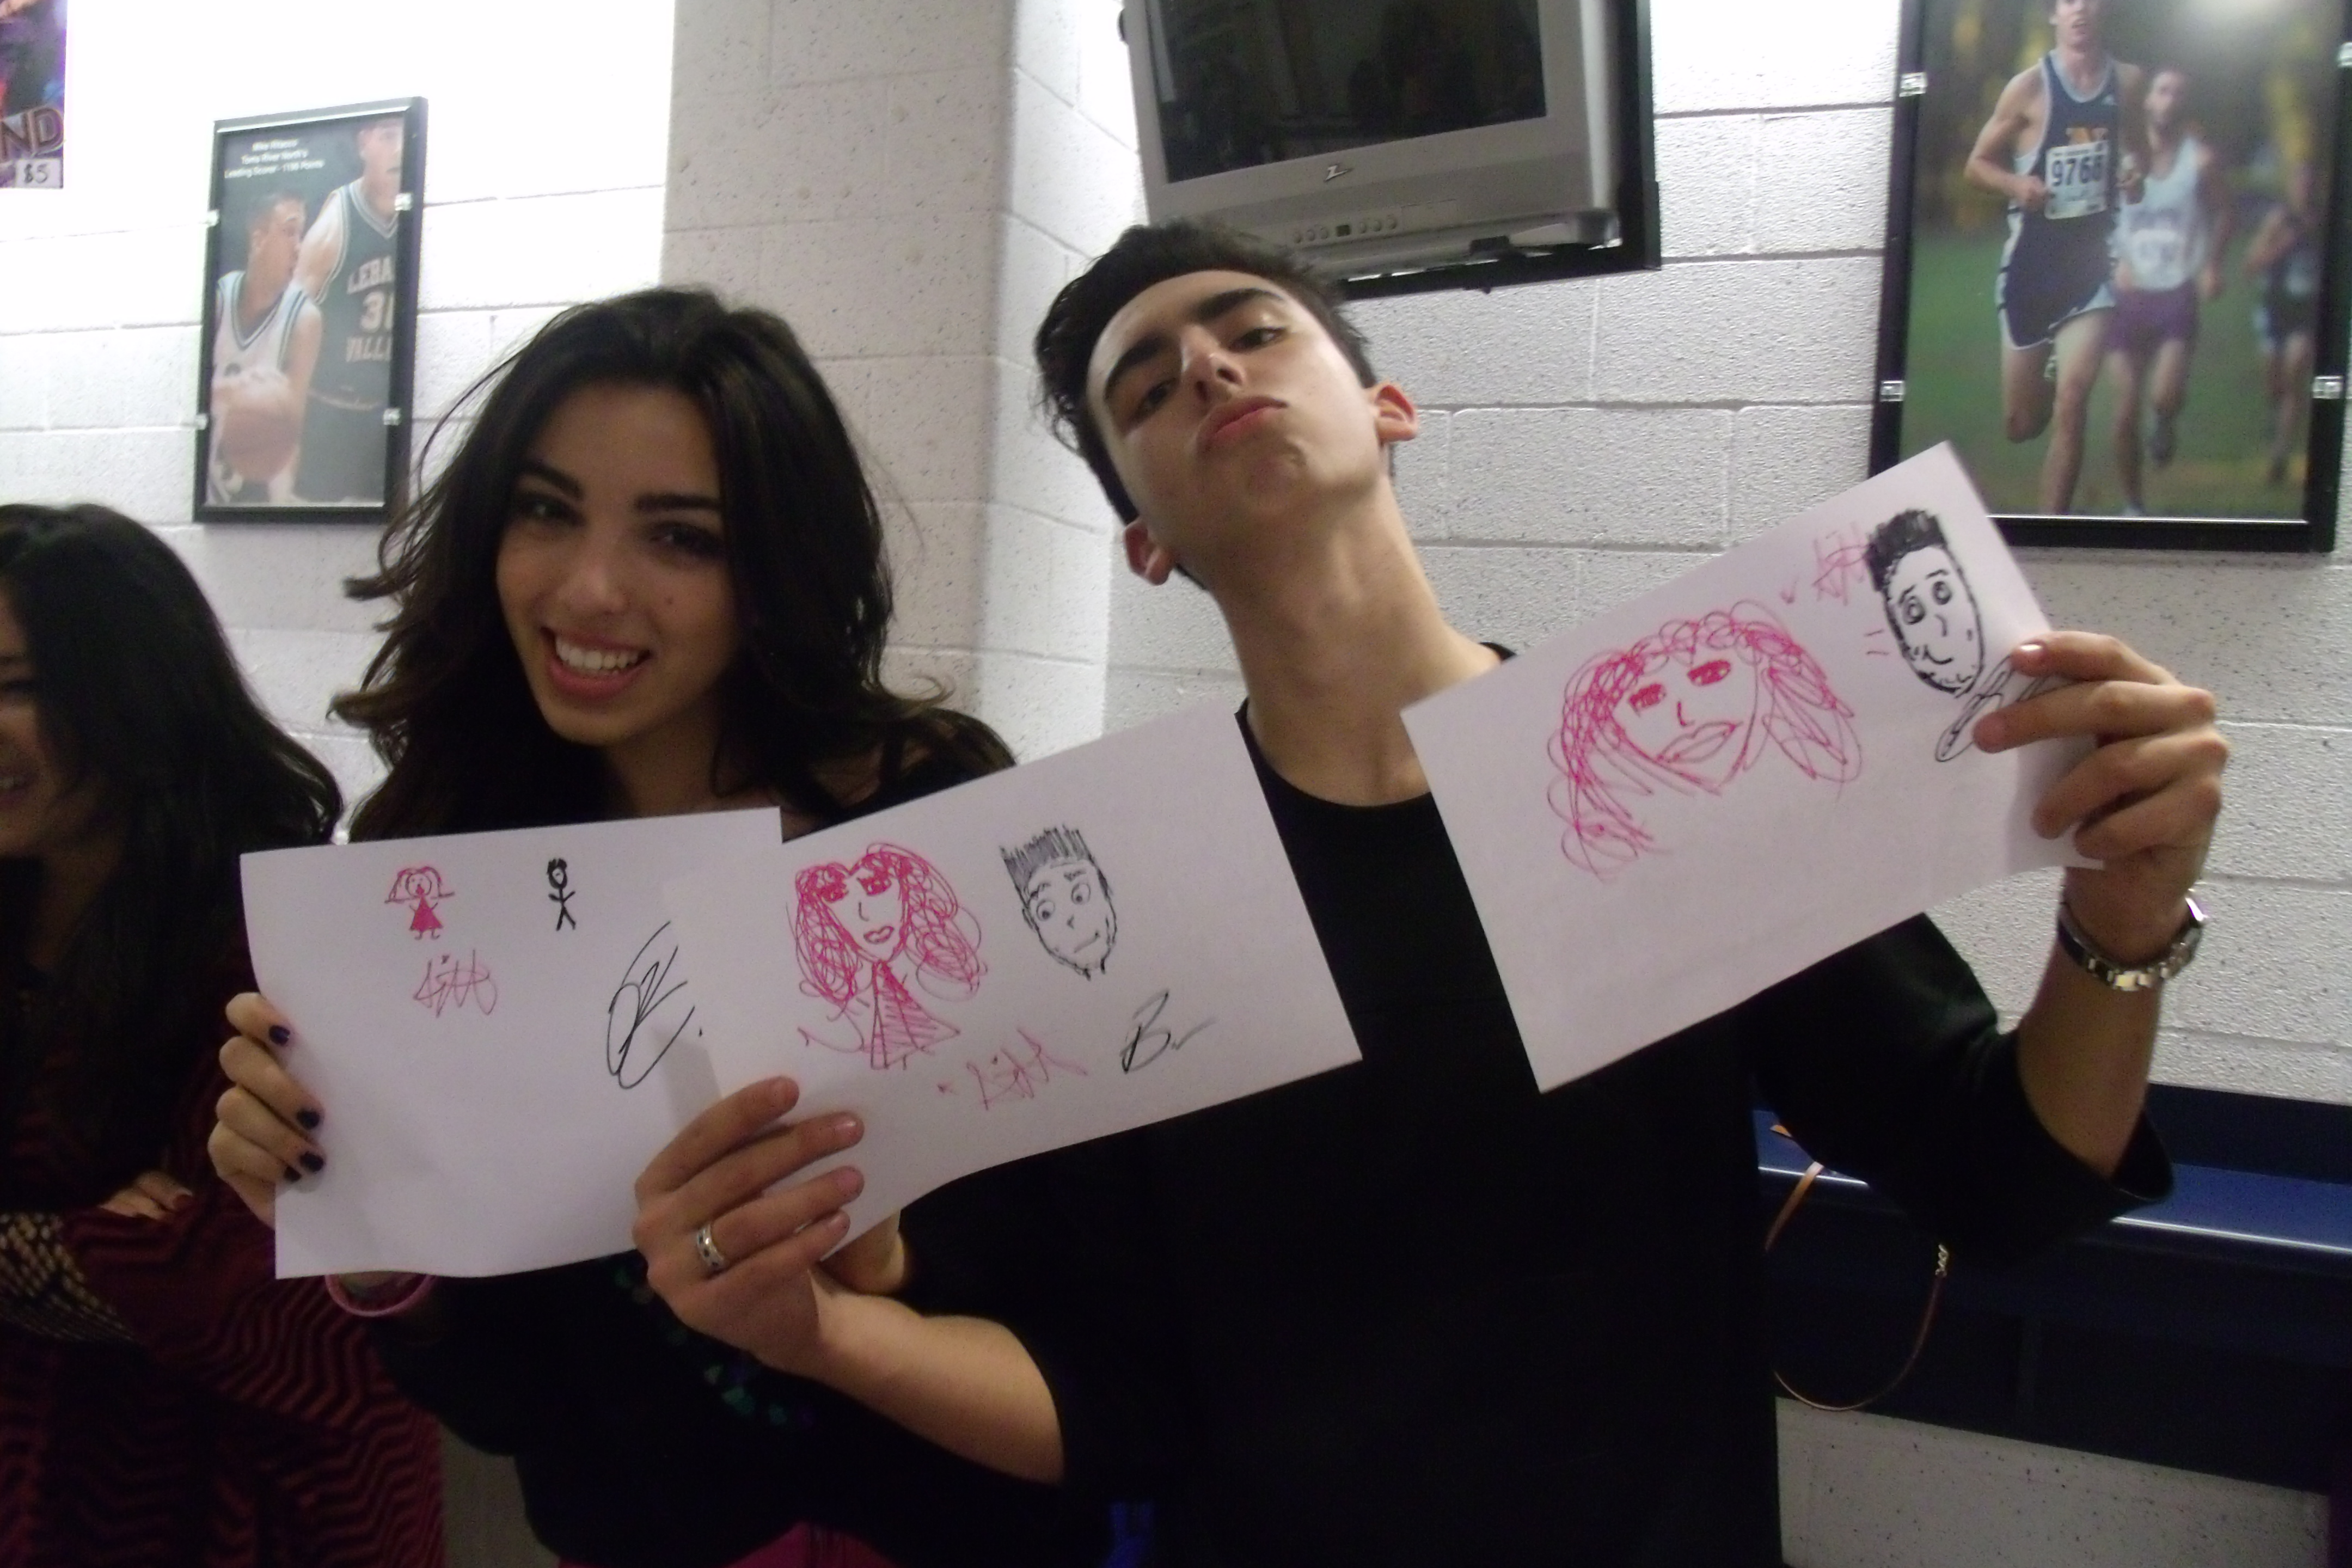 Brandon & Savannah with their drawings of themselves!